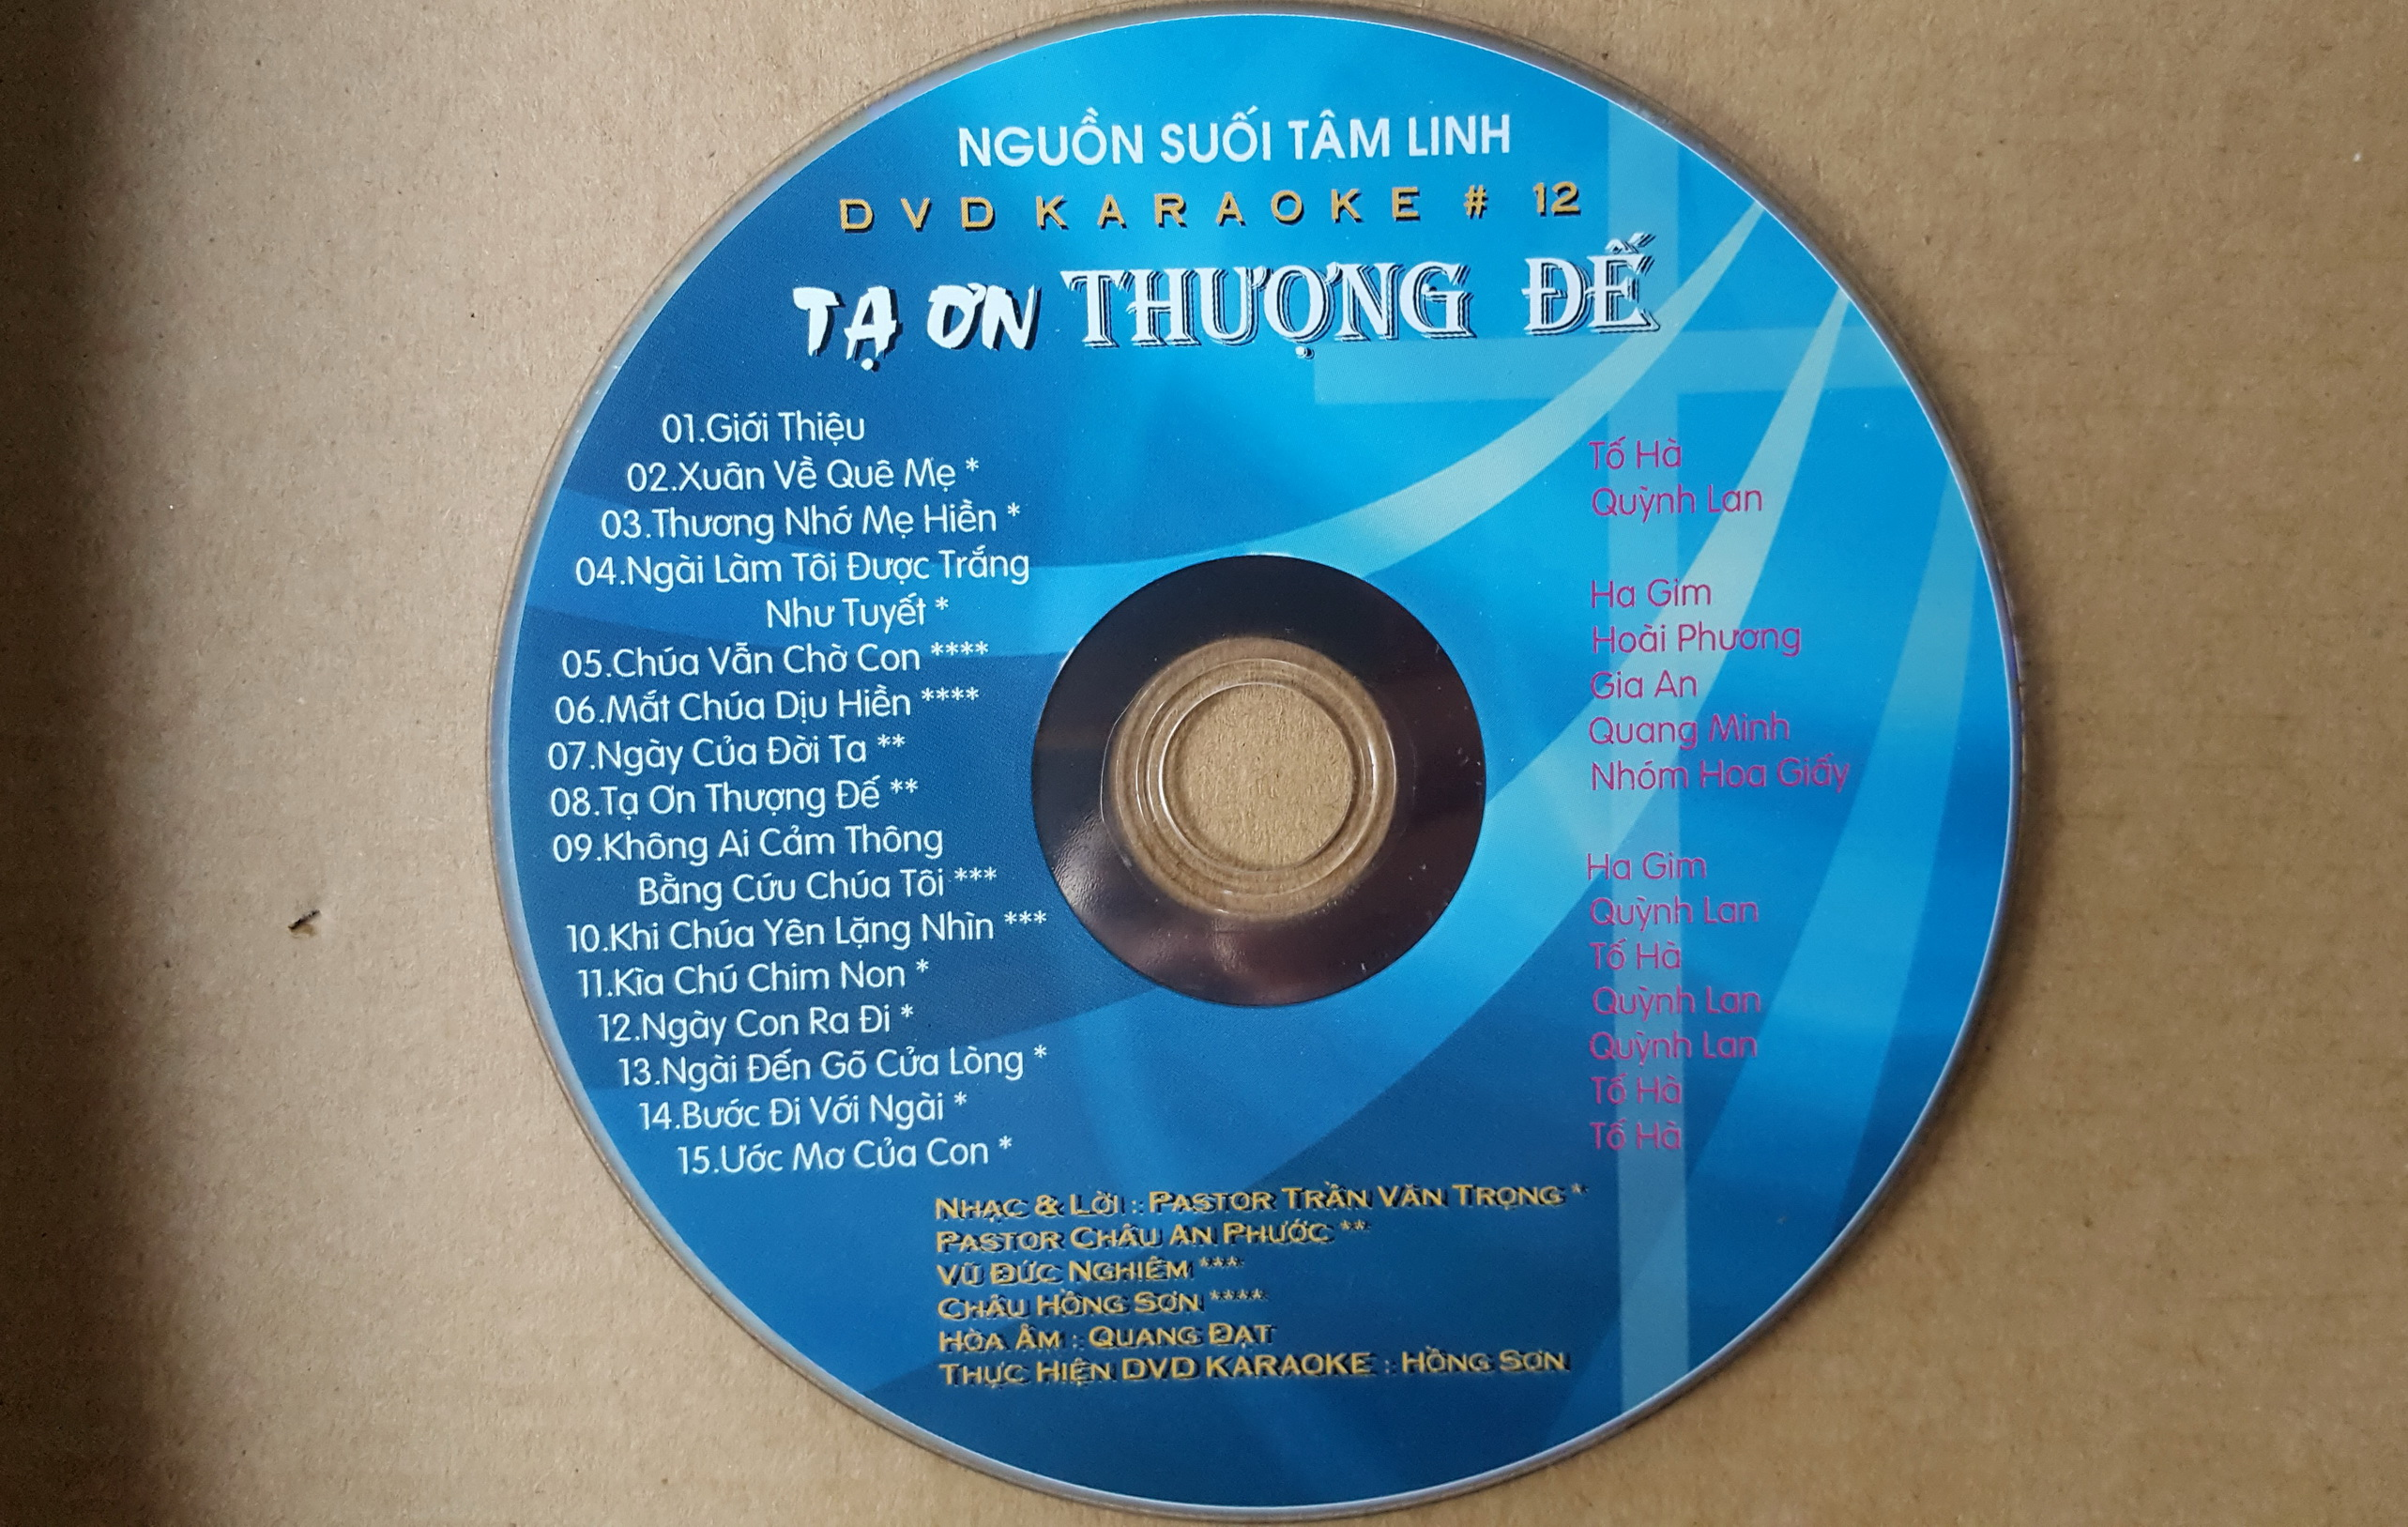 ta on Thuong de- DVD karaoke